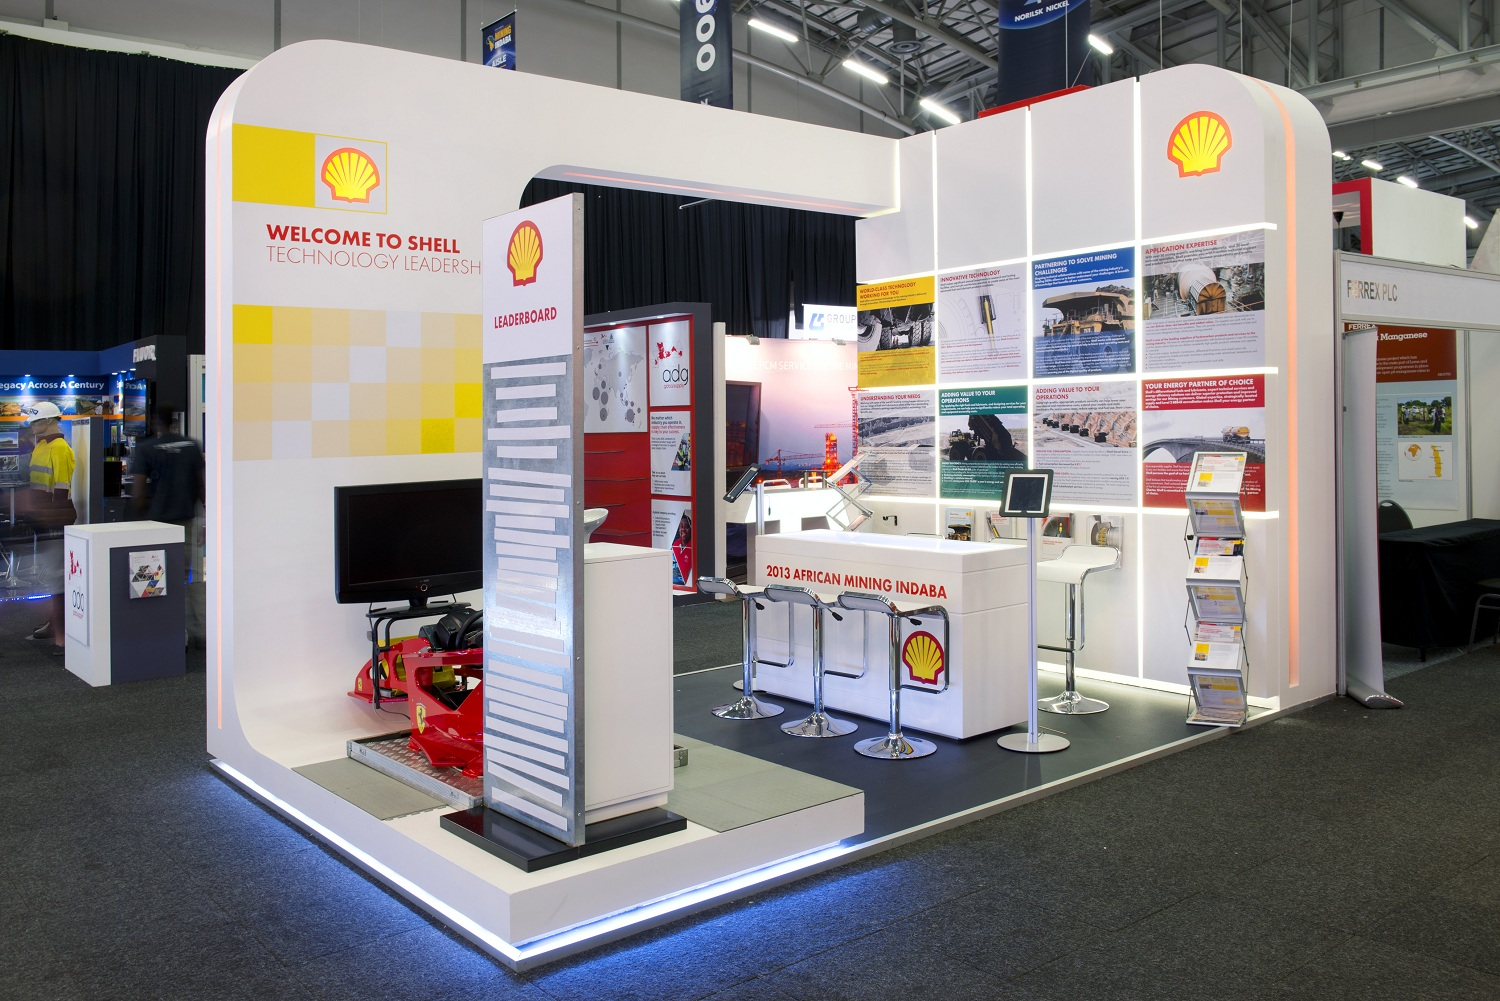 Small Exhibition Stand Design : Mining indaba hott d exhibition stands for clients shell